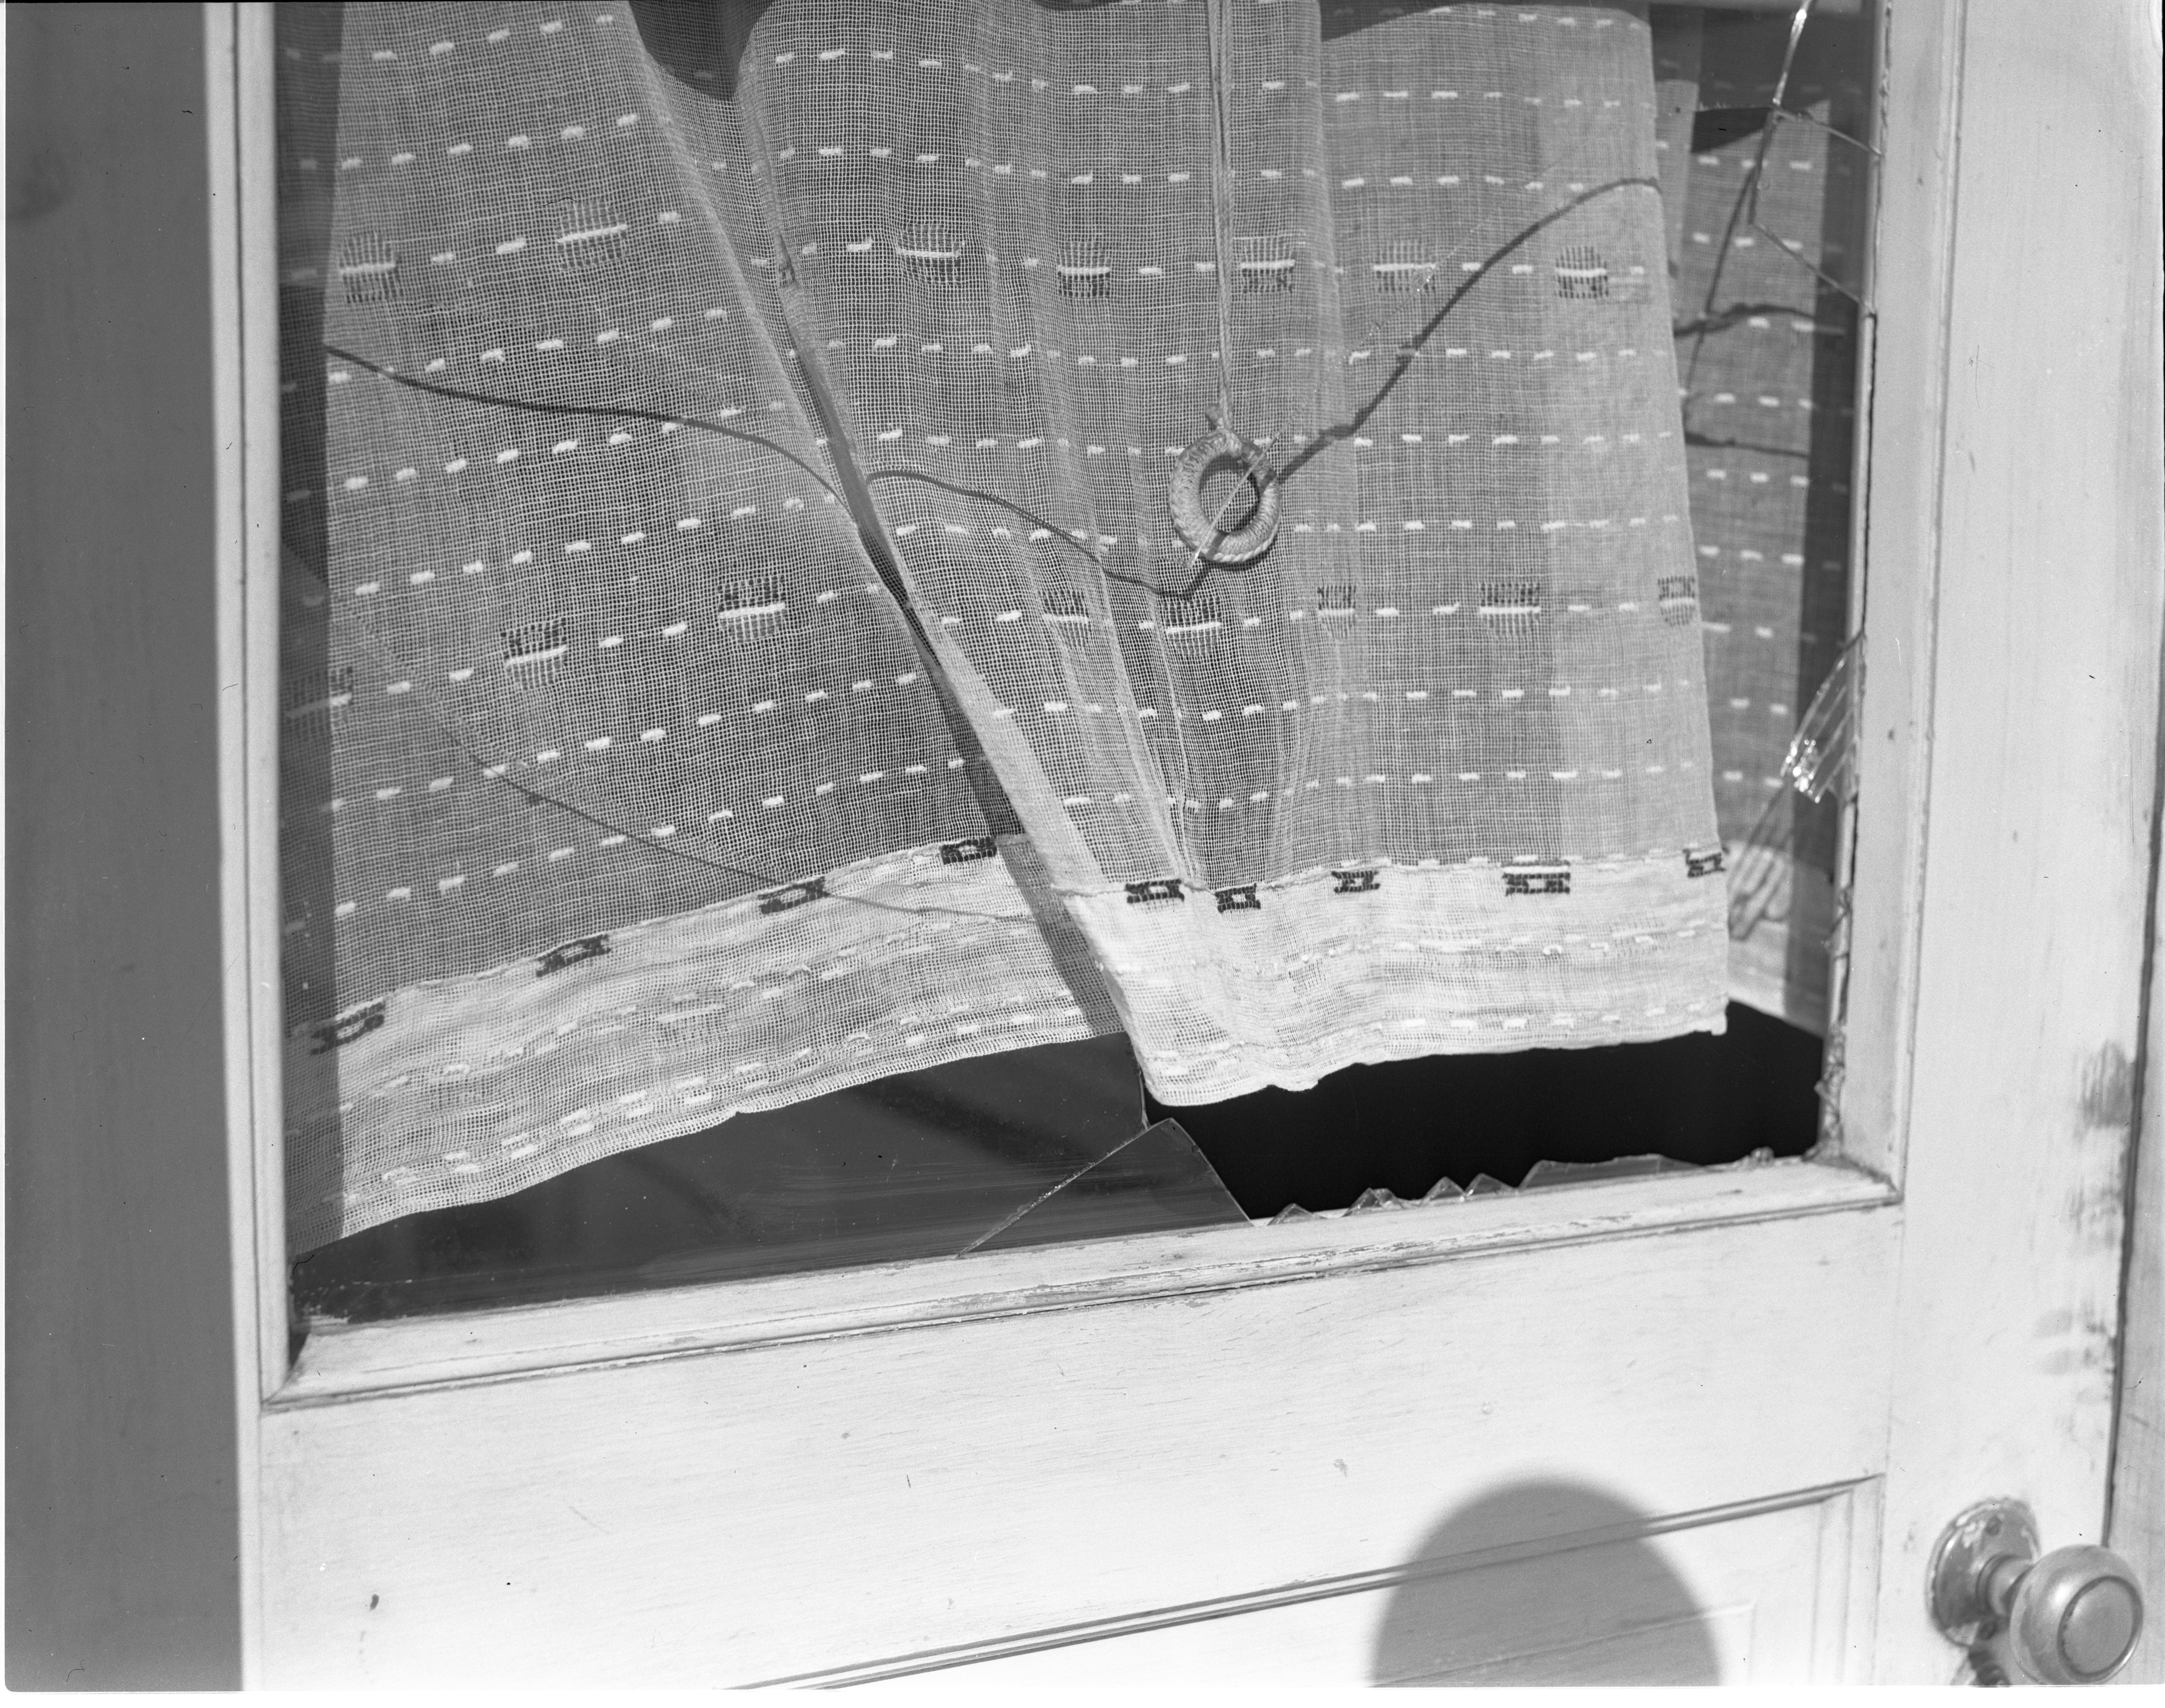 Smashed Side Door Window In The Murder Scene Of Zella McConnell, April 1949 image